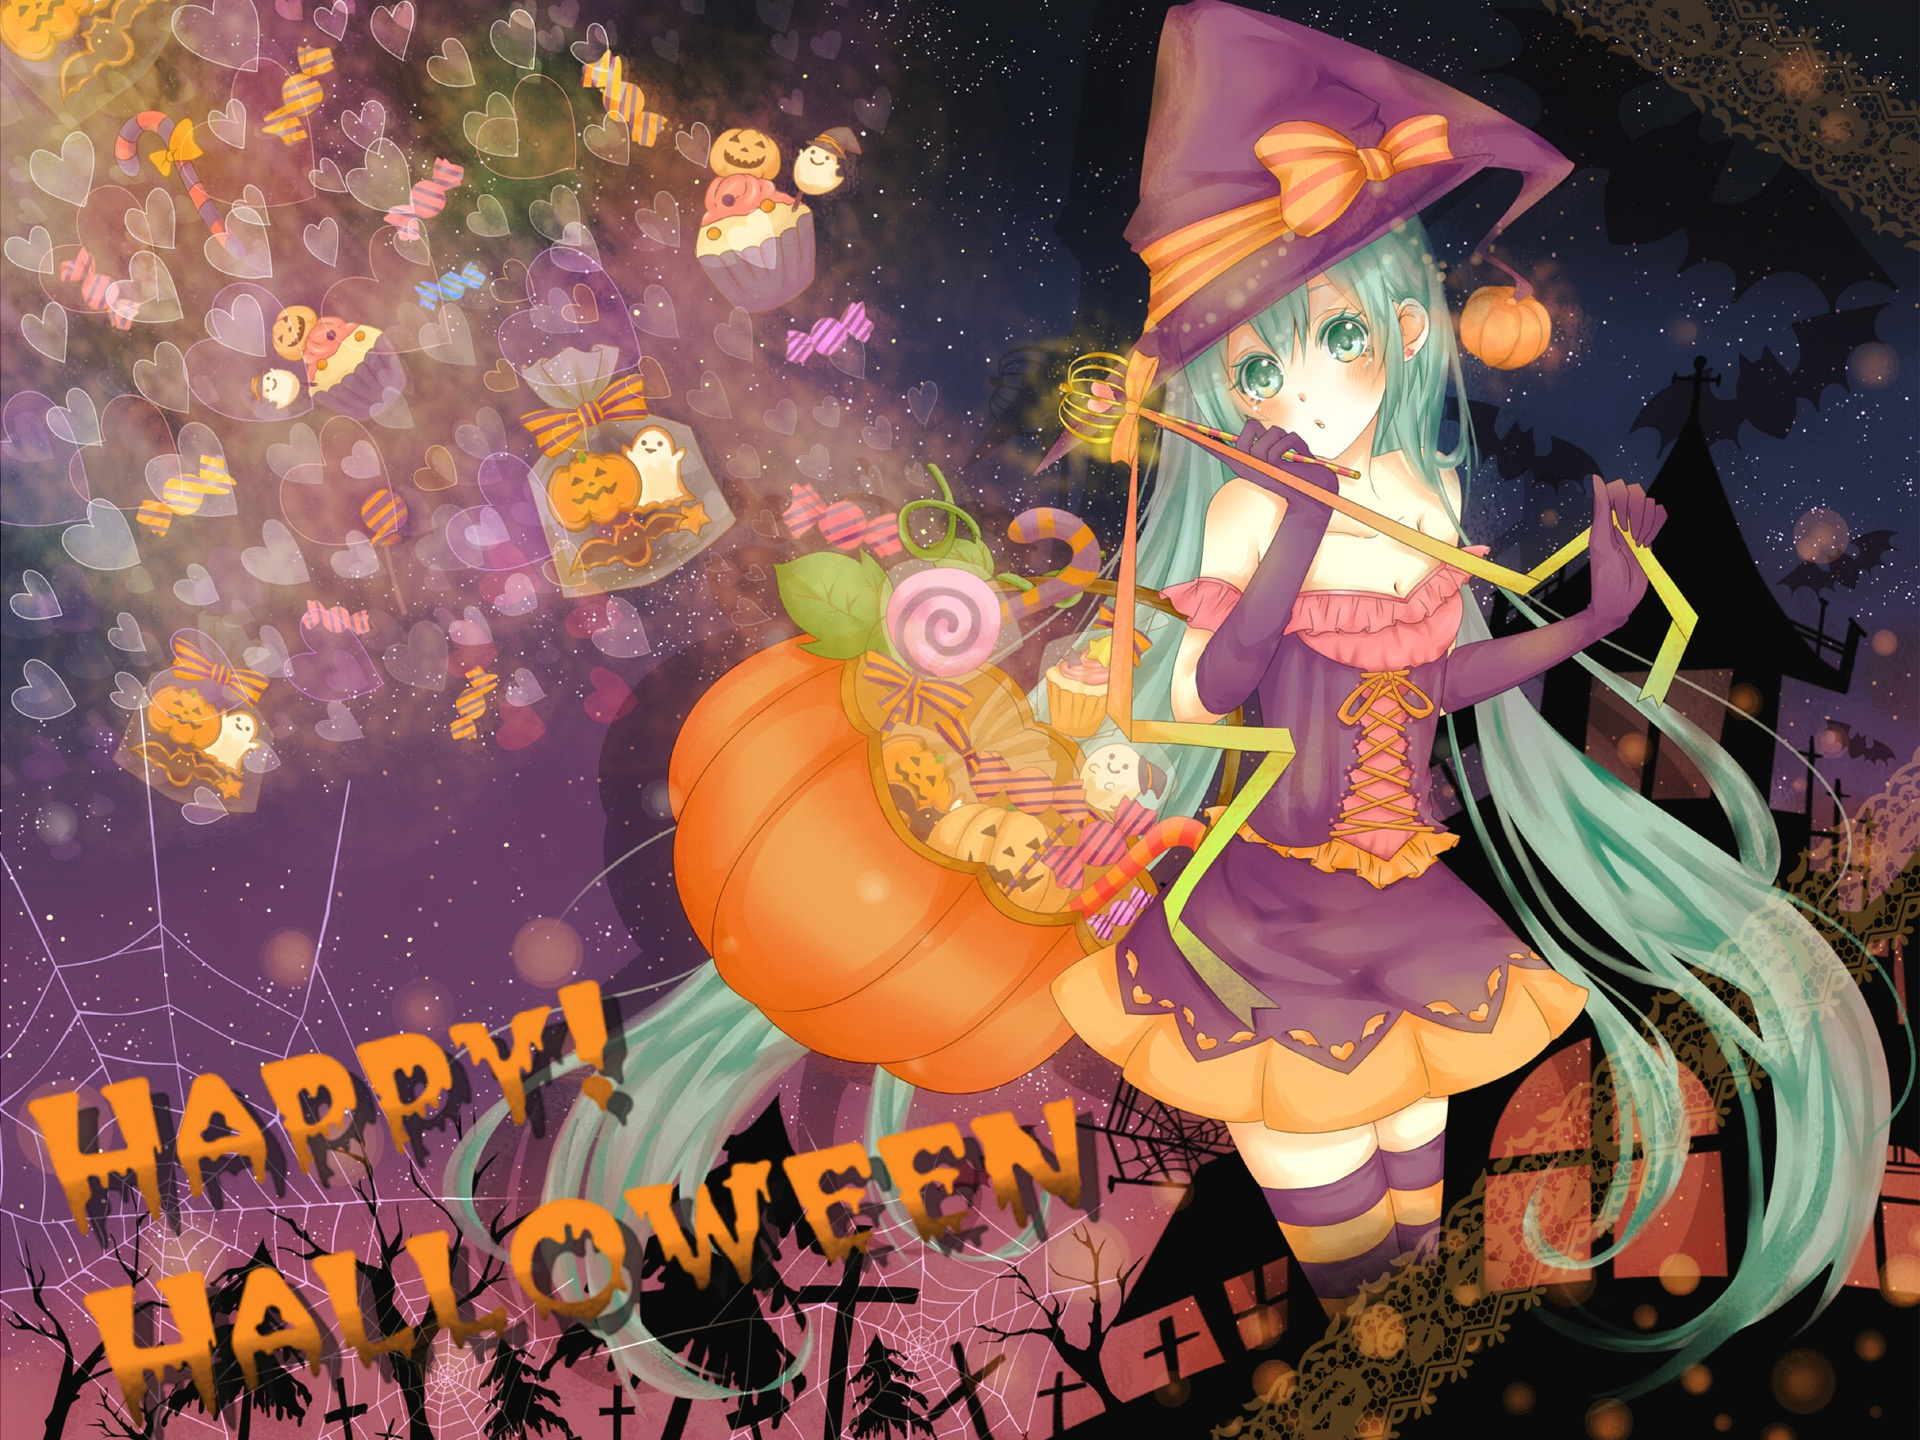 wallpaper halloween anime girl 1920x1440 hd picture image